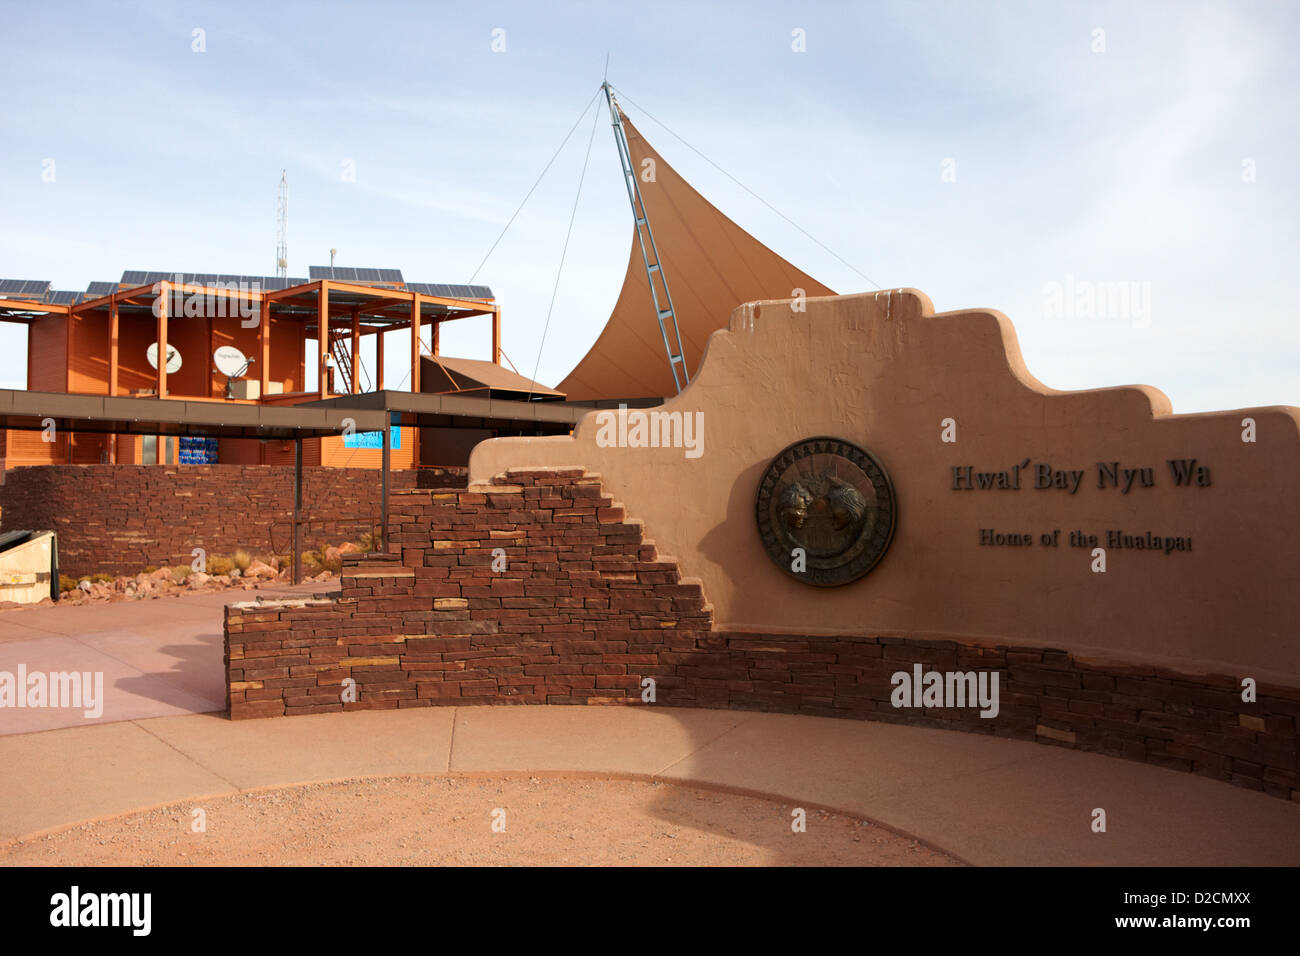 home of the hualapai nation sign at guano point Arizona USA - Stock Image